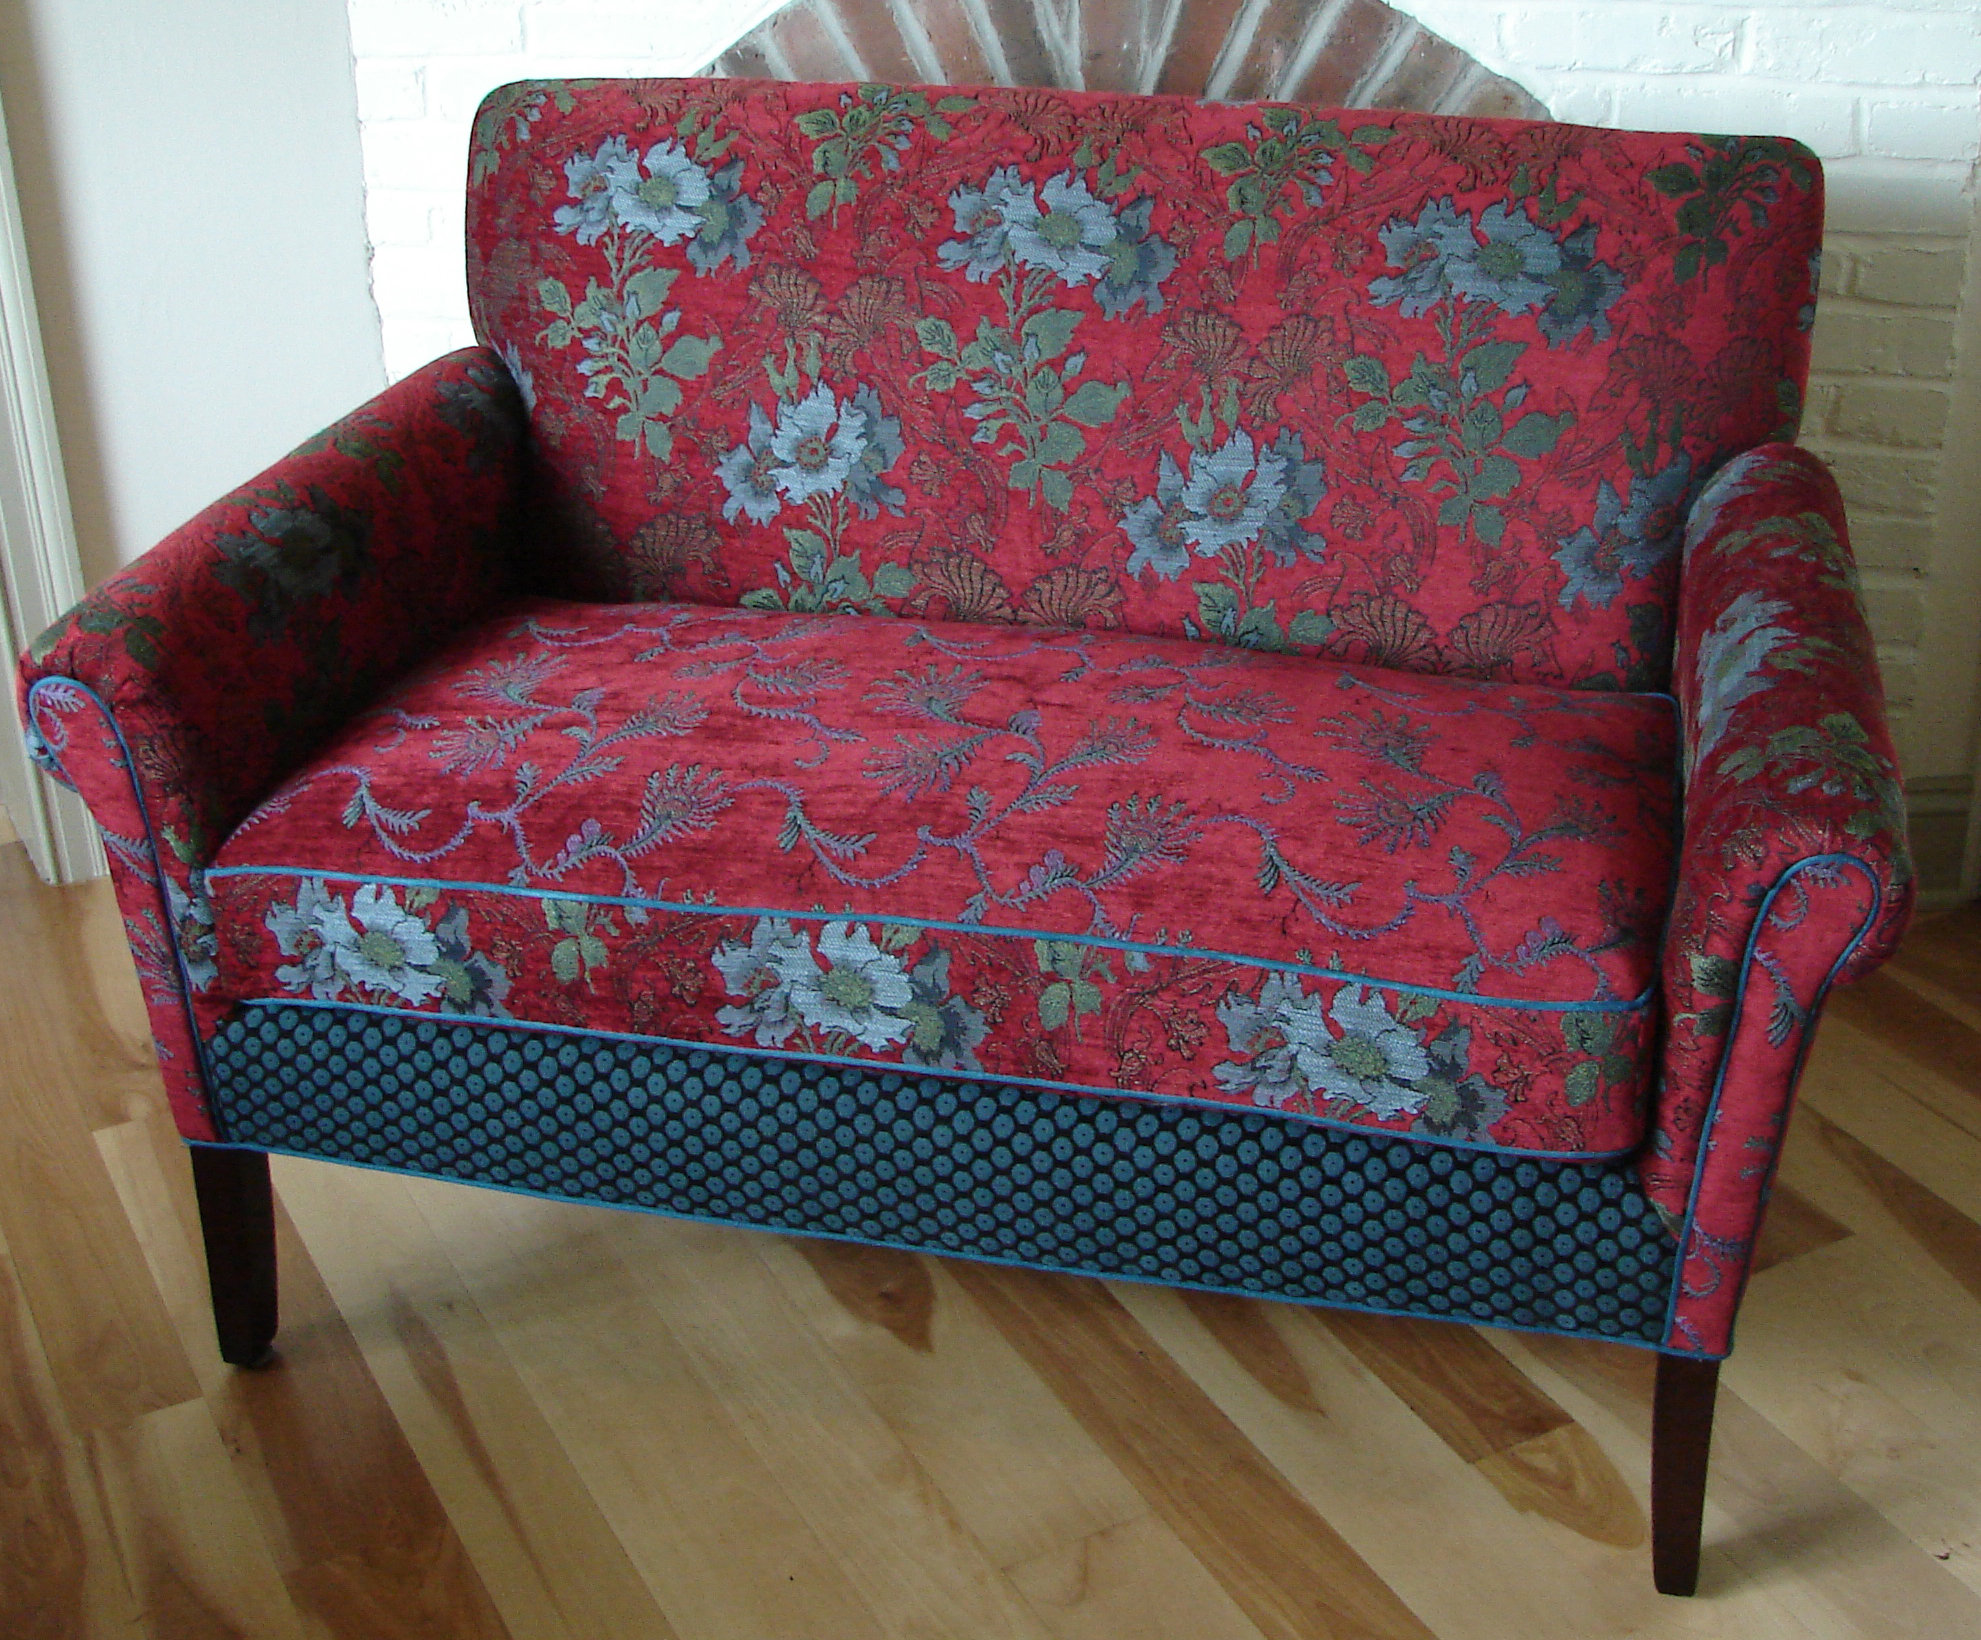 Salon Settee In Red Wine By Mary Lynn Oshea Upholstered